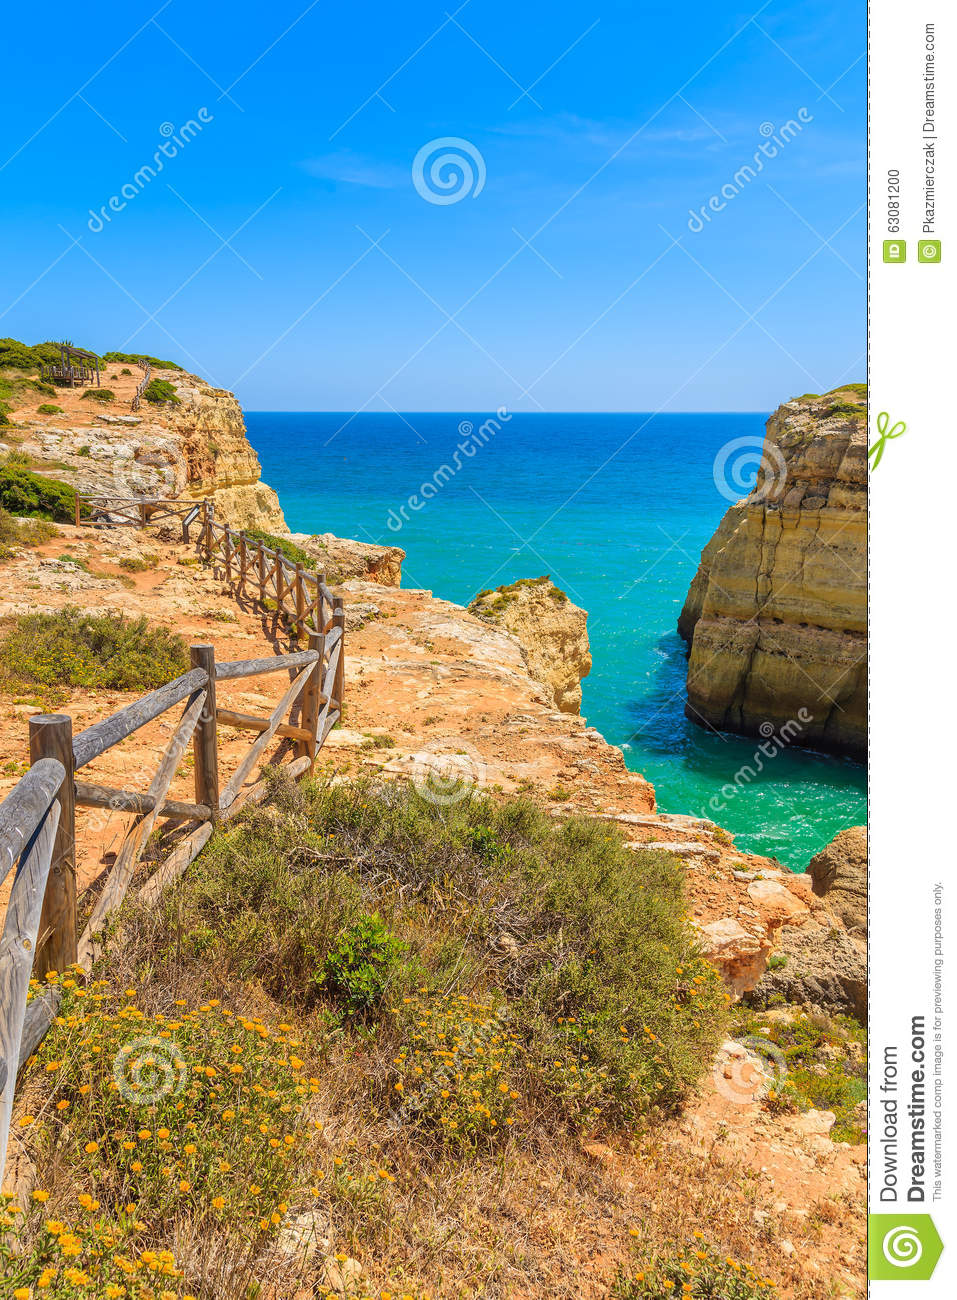 Download Chemin Bleu De Mer Et De Falaise Photo stock - Image du côte, vert: 63081200